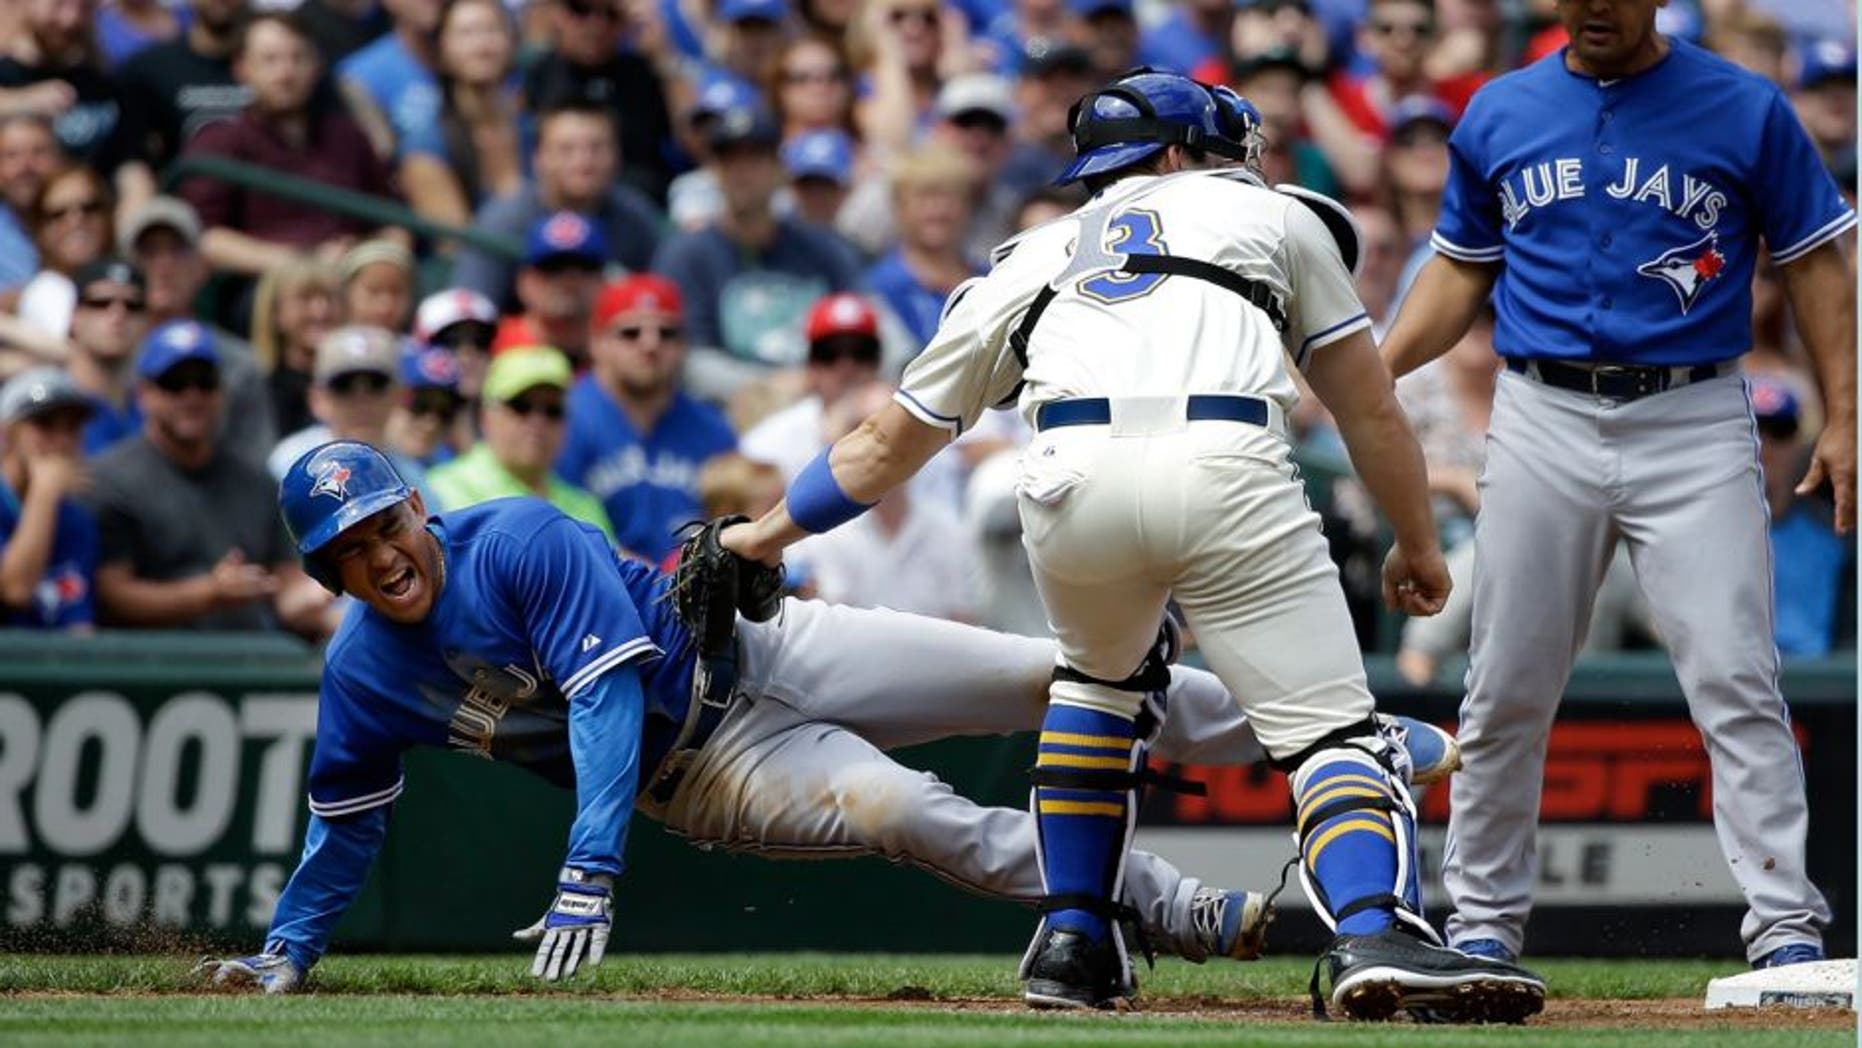 Seattle Mariners catcher Mike Zunino, center, tags Toronto Blue Jays' Ezequiel Carrera, left, out at third base as third base coach Luis Rivera looks on at the end of a triple play in the fourth inning of a baseball game Sunday, July 26, 2015, in Seattle. (AP Photo/Elaine Thompson)